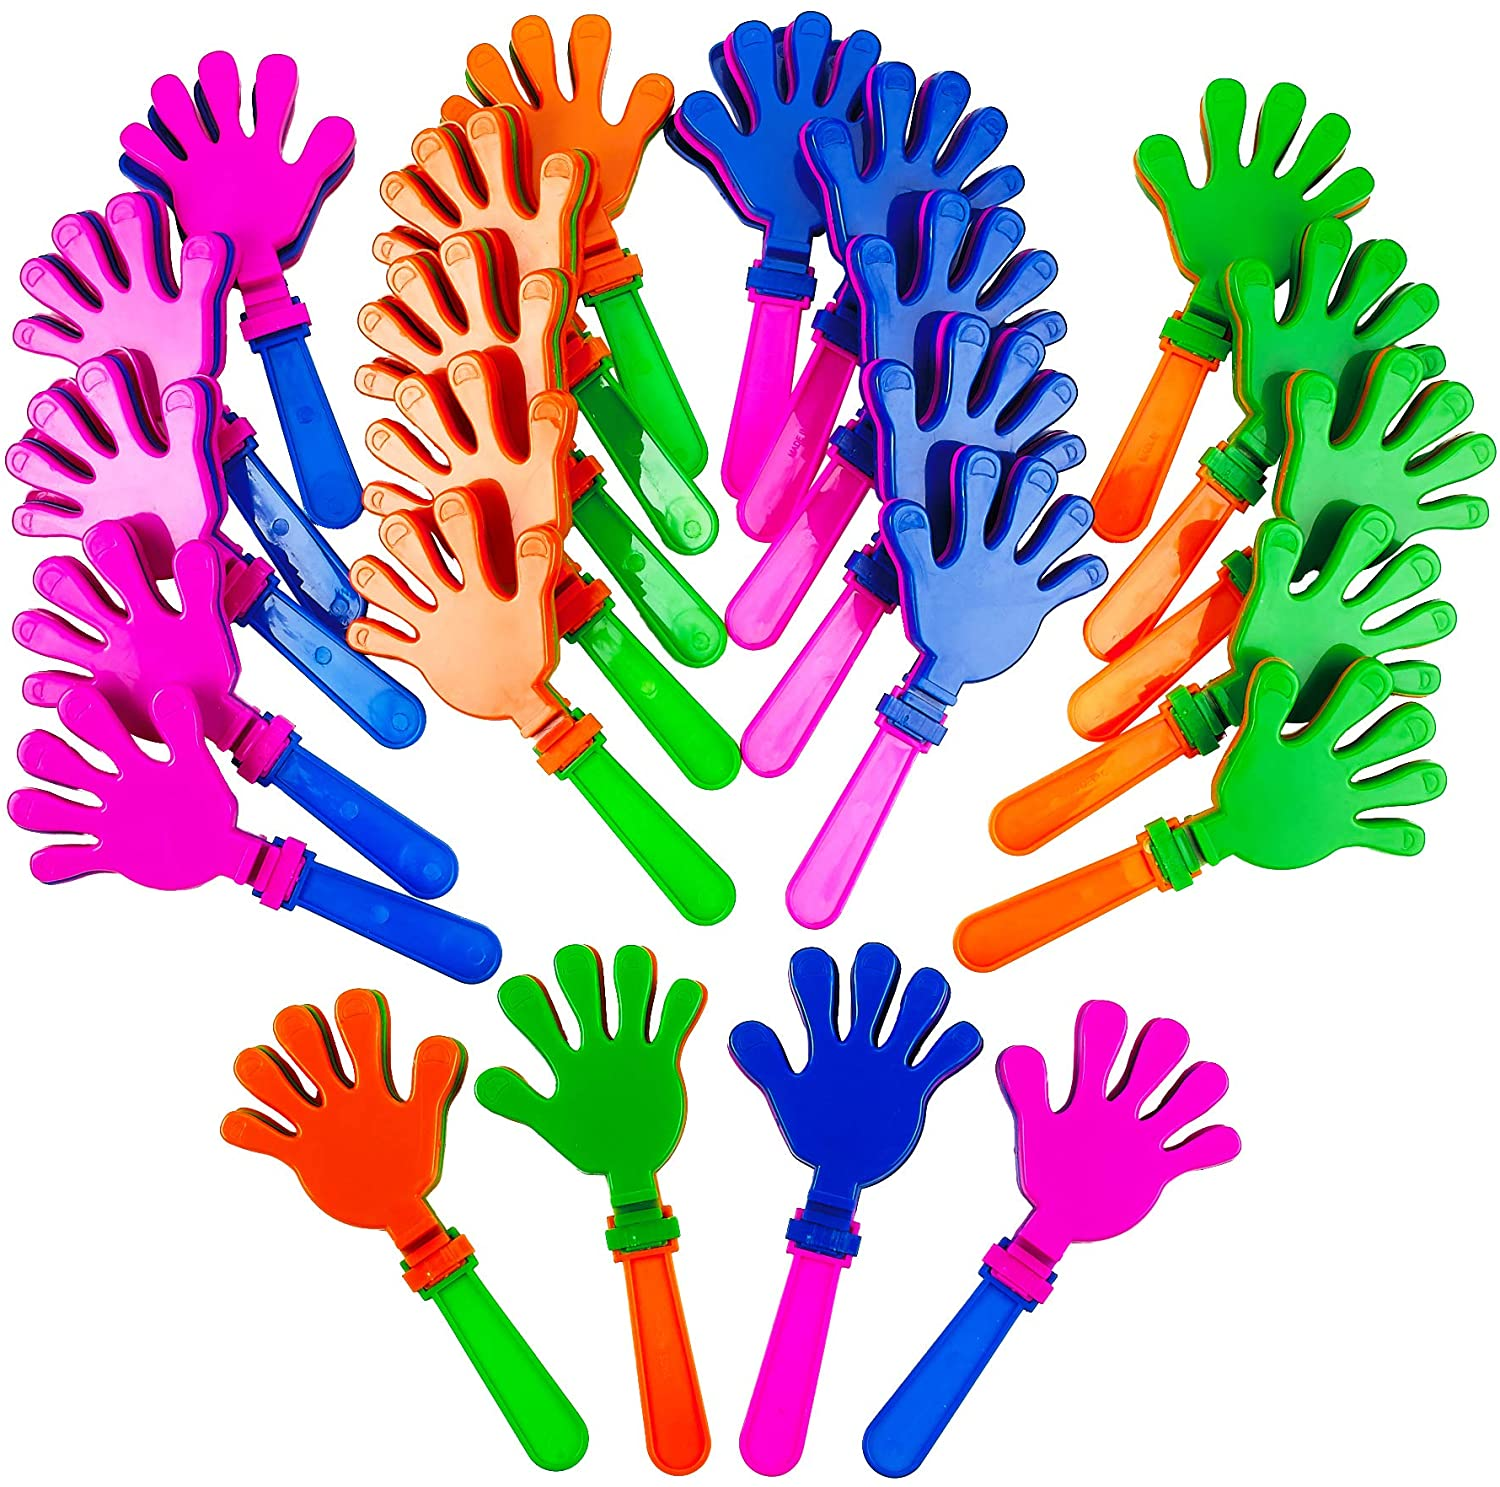 Kicko Plastic Hand Clappers - 24 Pack - 7.5 Inch - for Kids, Party Favors, Stocking Stuffers, Classroom Prizes, Decorations, Birthday Supplies, Holidays, Pinata Filler, Novelties and Rewards